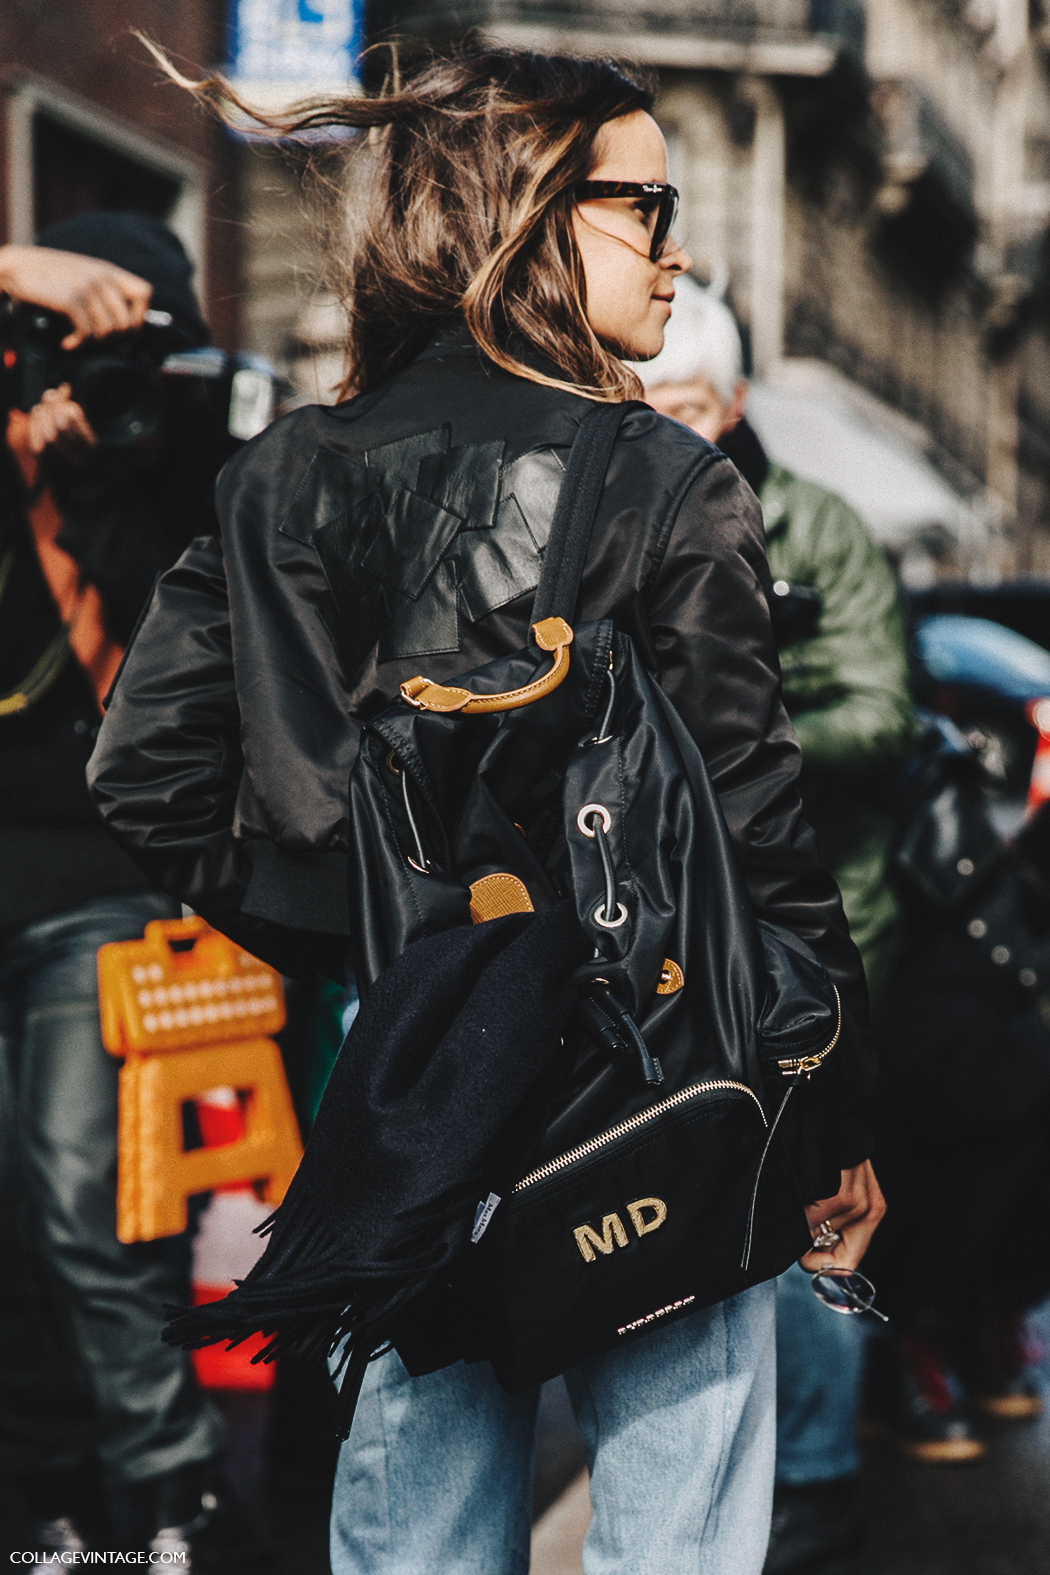 PFW-Paris_Fashion_Week_Fall_2016-Street_Style-Collage_Vintage-Miroslava_Duma-Vetements-Jeans-Backpack-Bomber-2